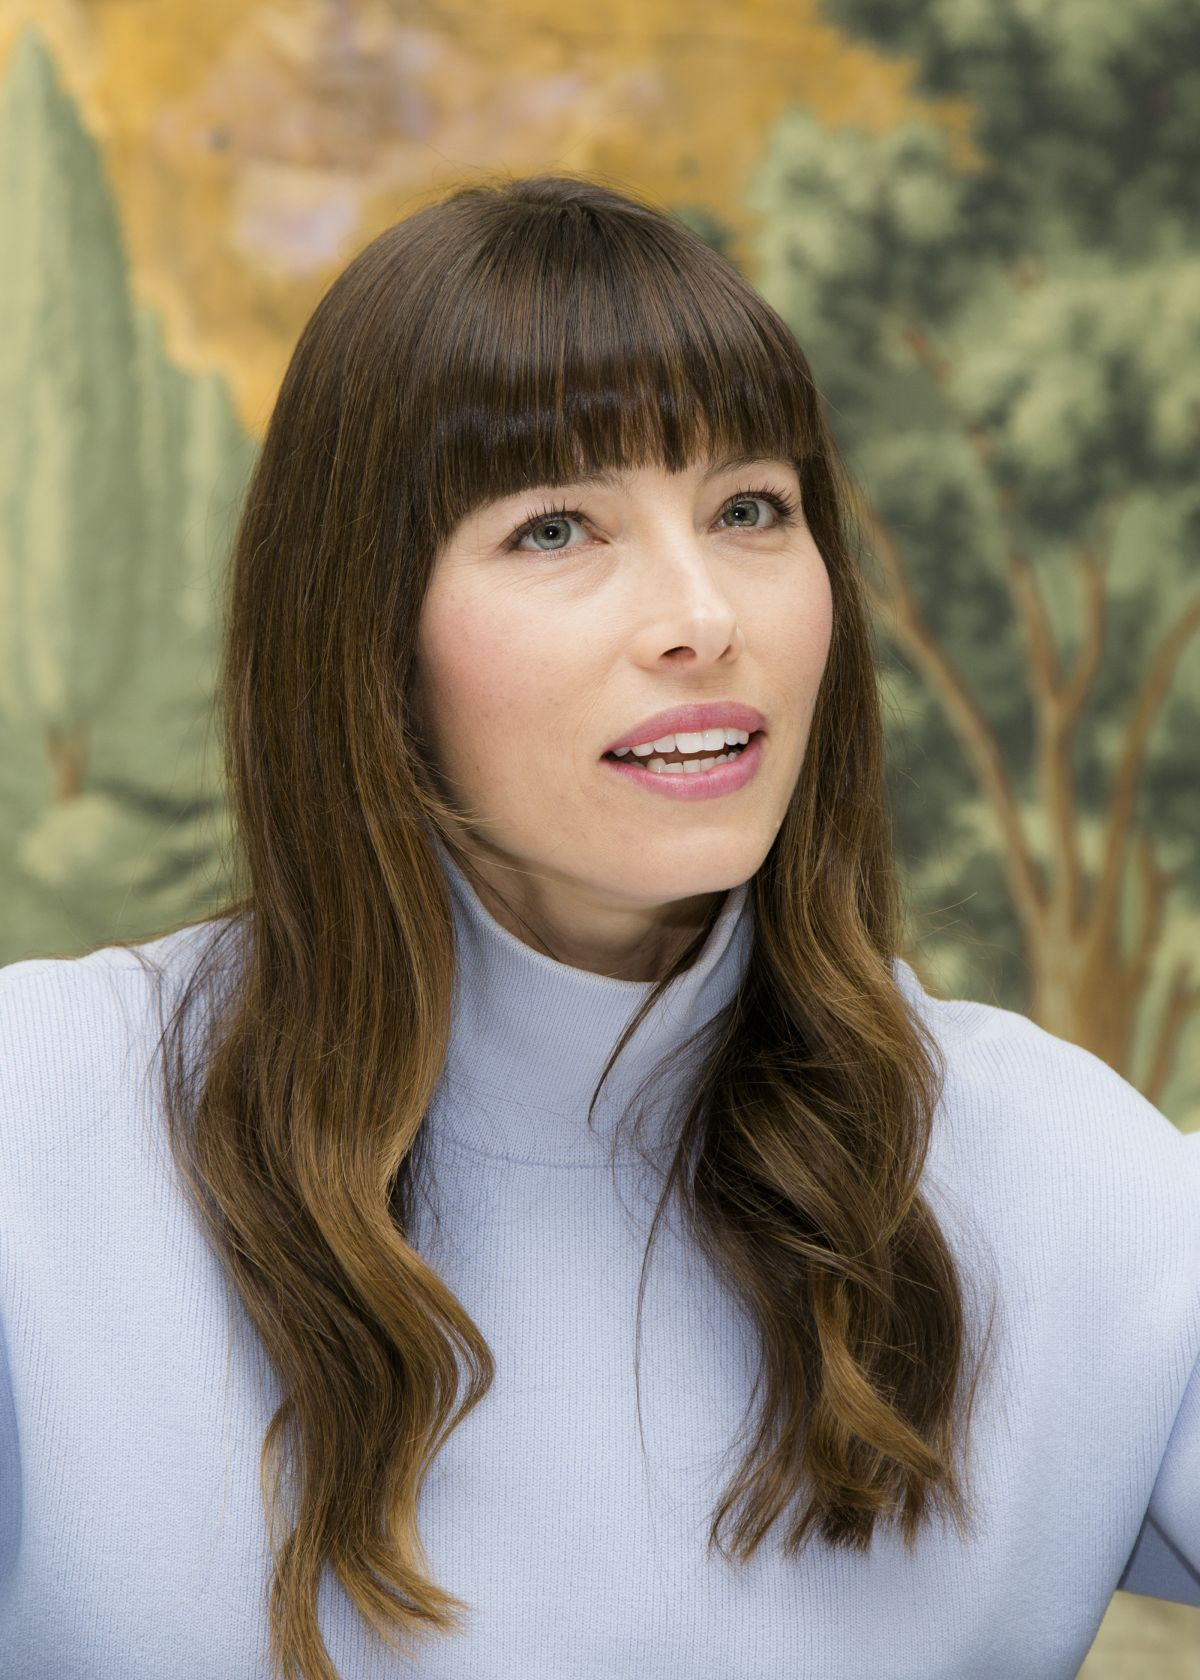 JESSICA BIEL at The Sinner Press Conference in New York 04 ... Jessica Biel The Sinner